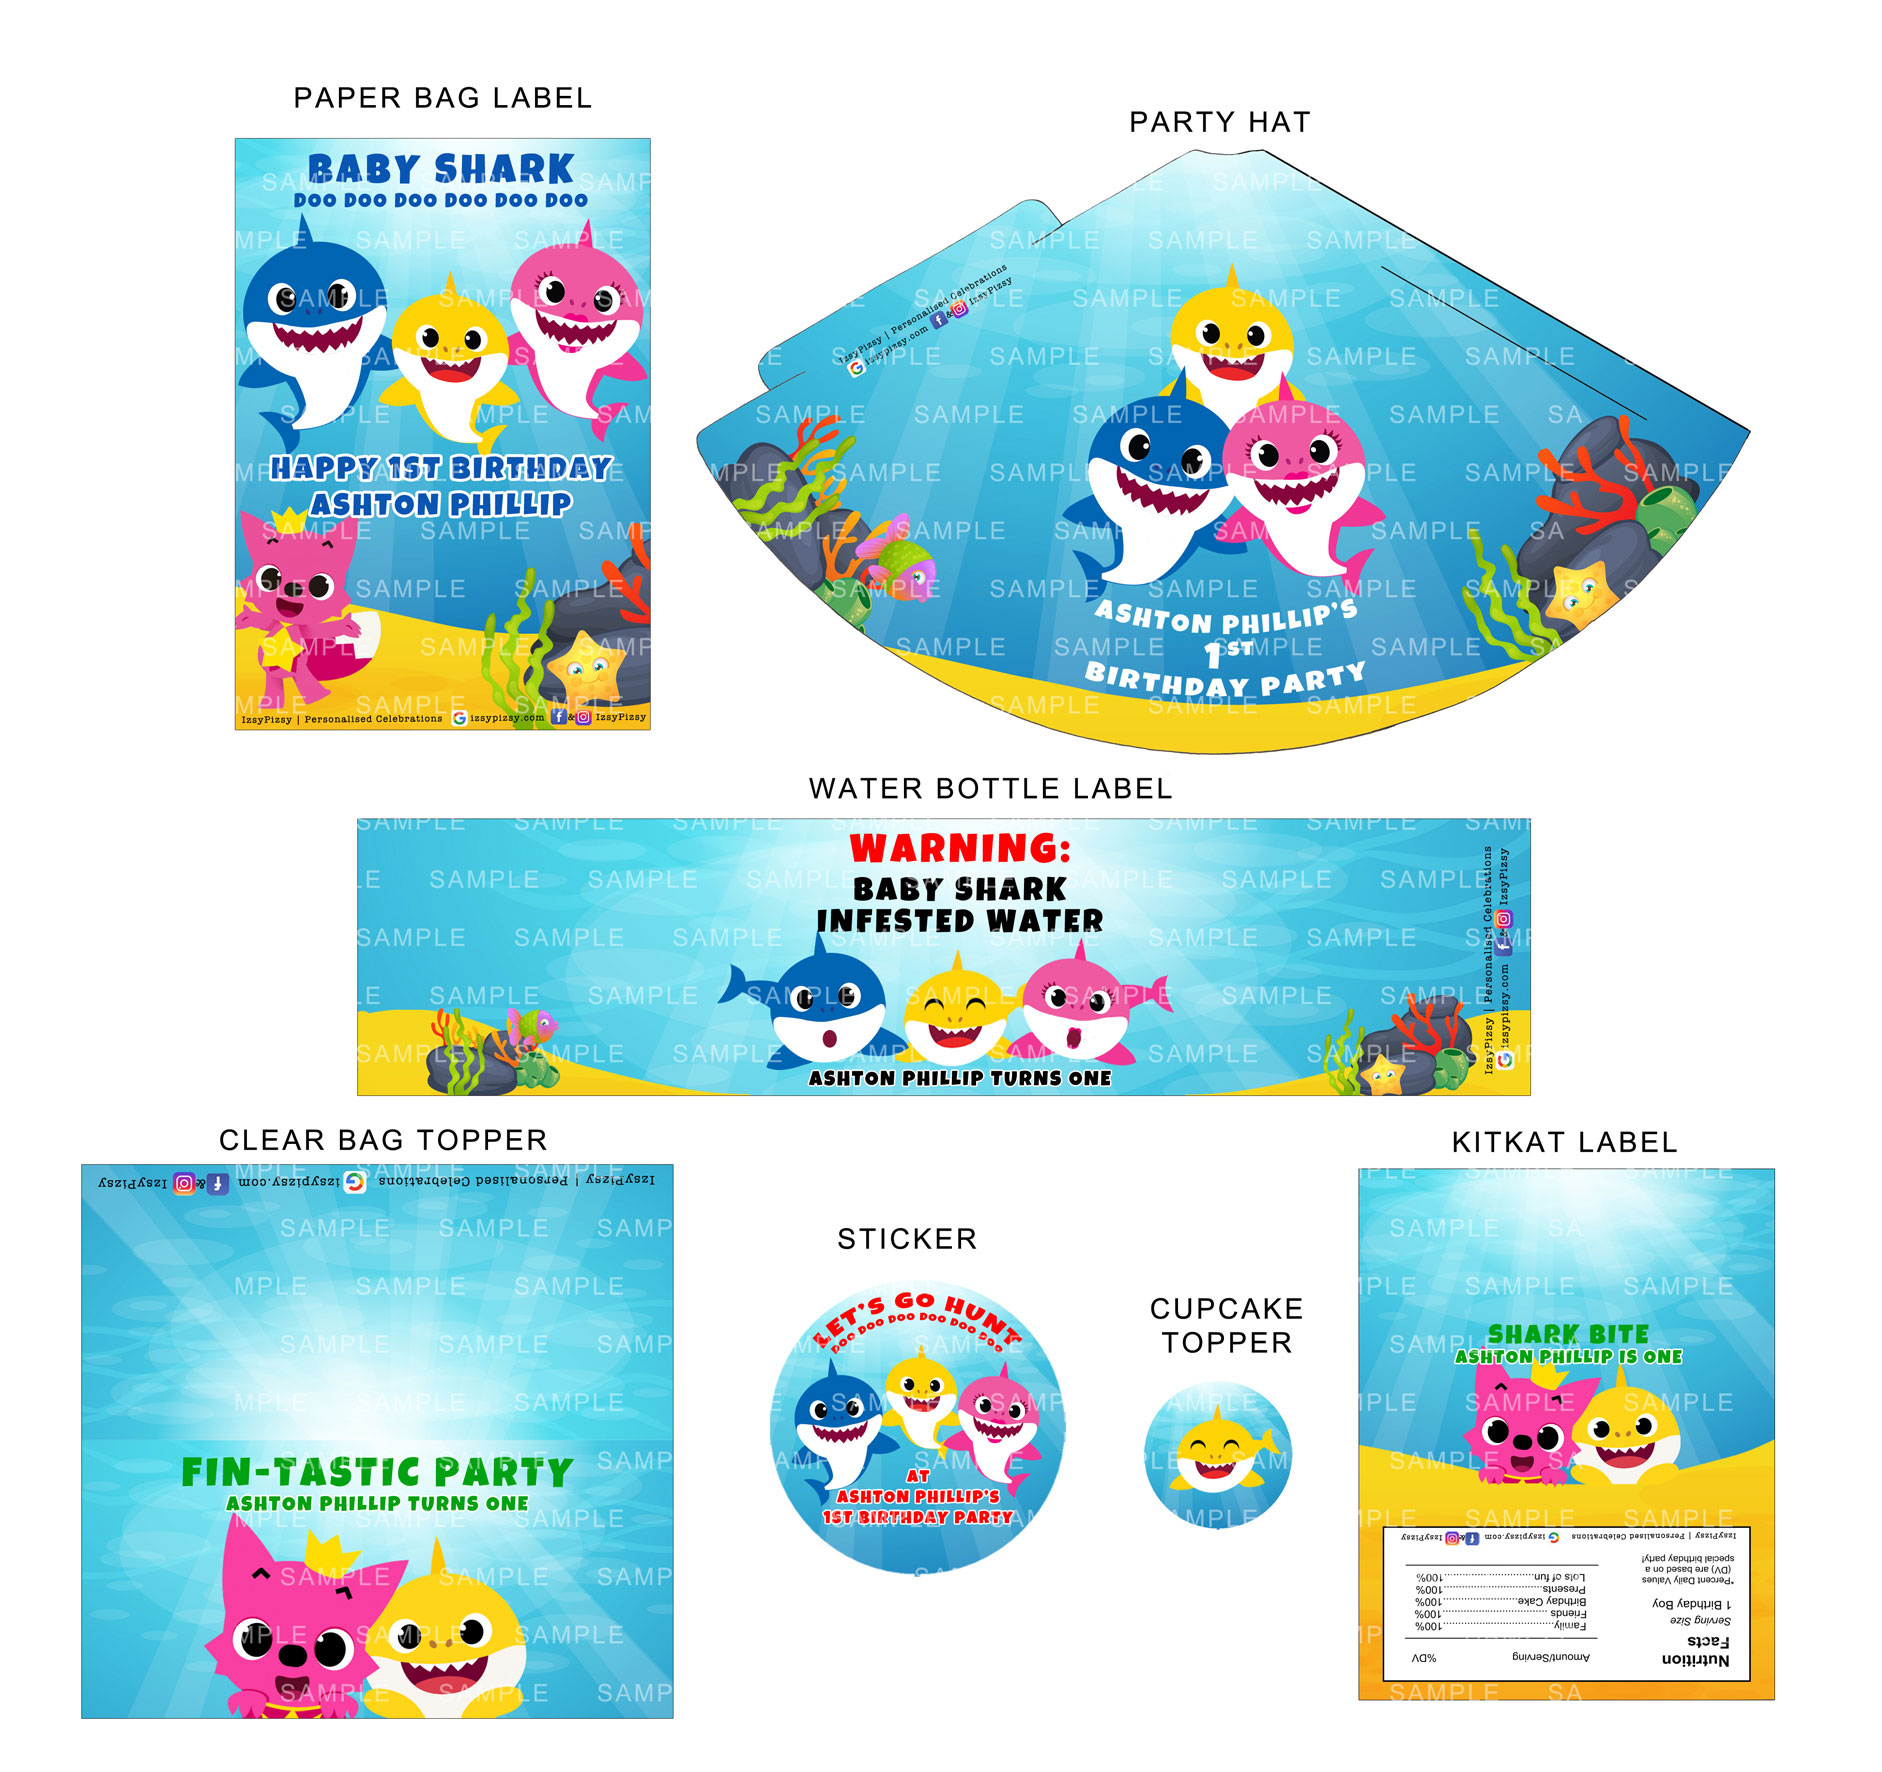 Baby Shark Doo Custom Party Printables Name Age Kids Birthday Ideas Decorations Invitation Hat